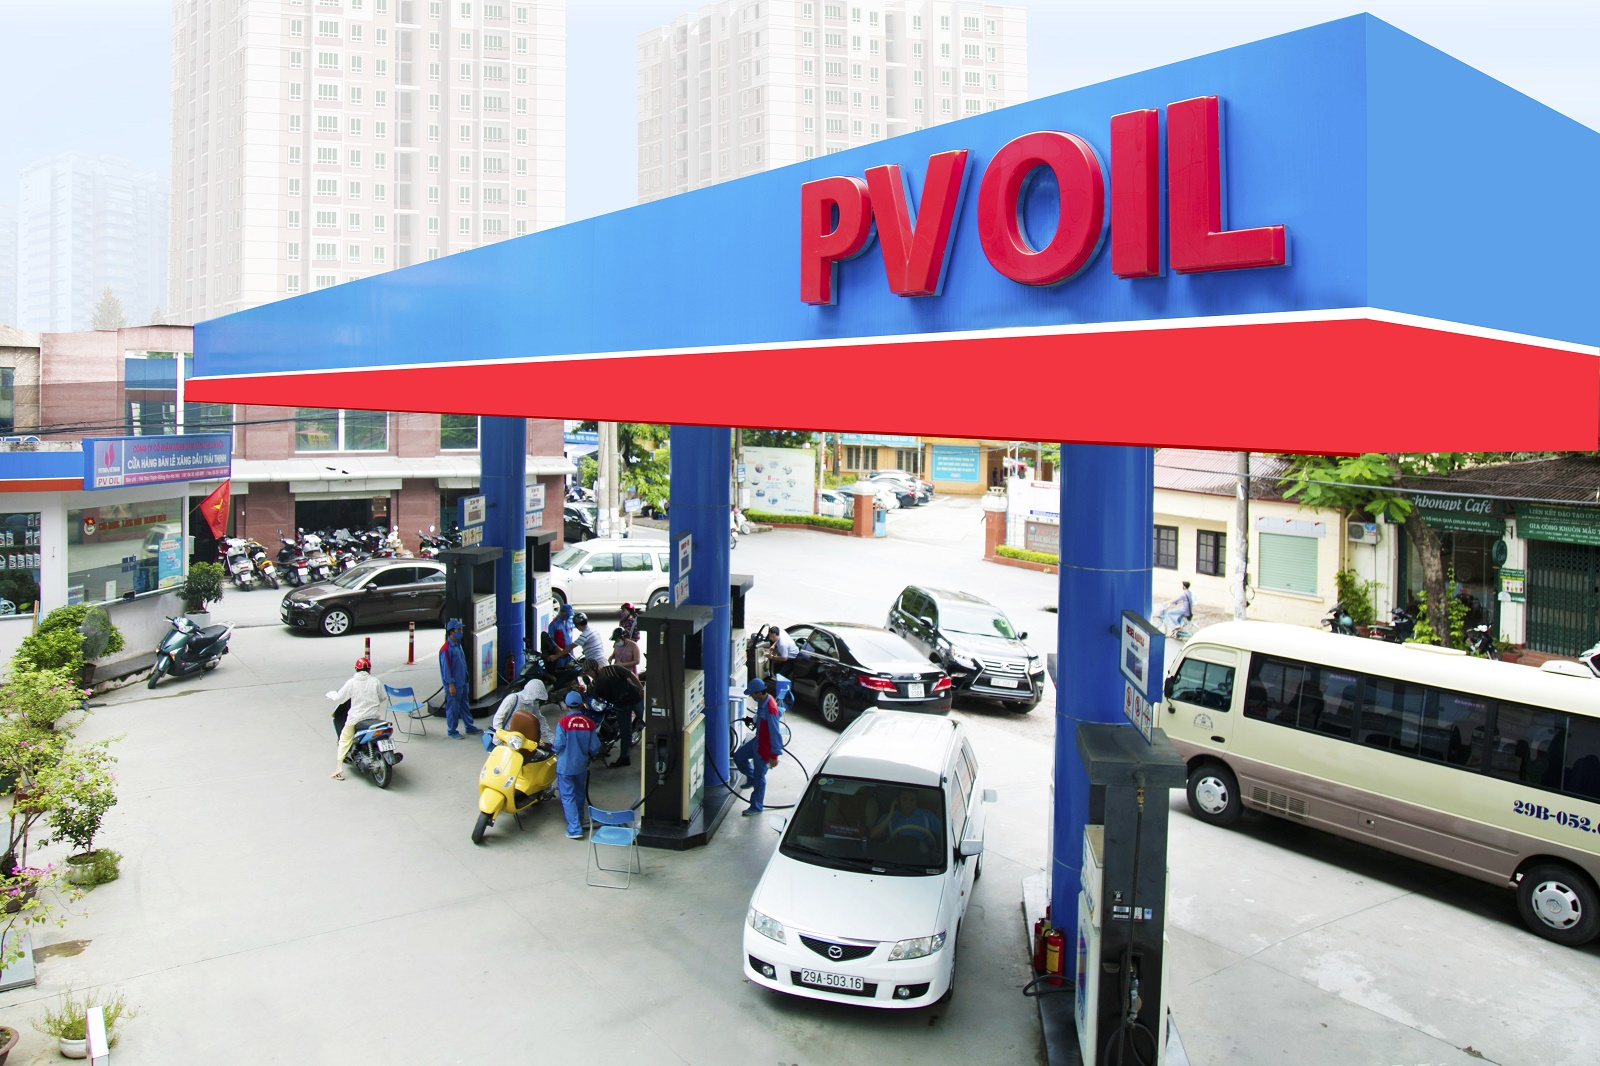 Vietnam's VinFast in deal with PV Oil for electric car charging stations